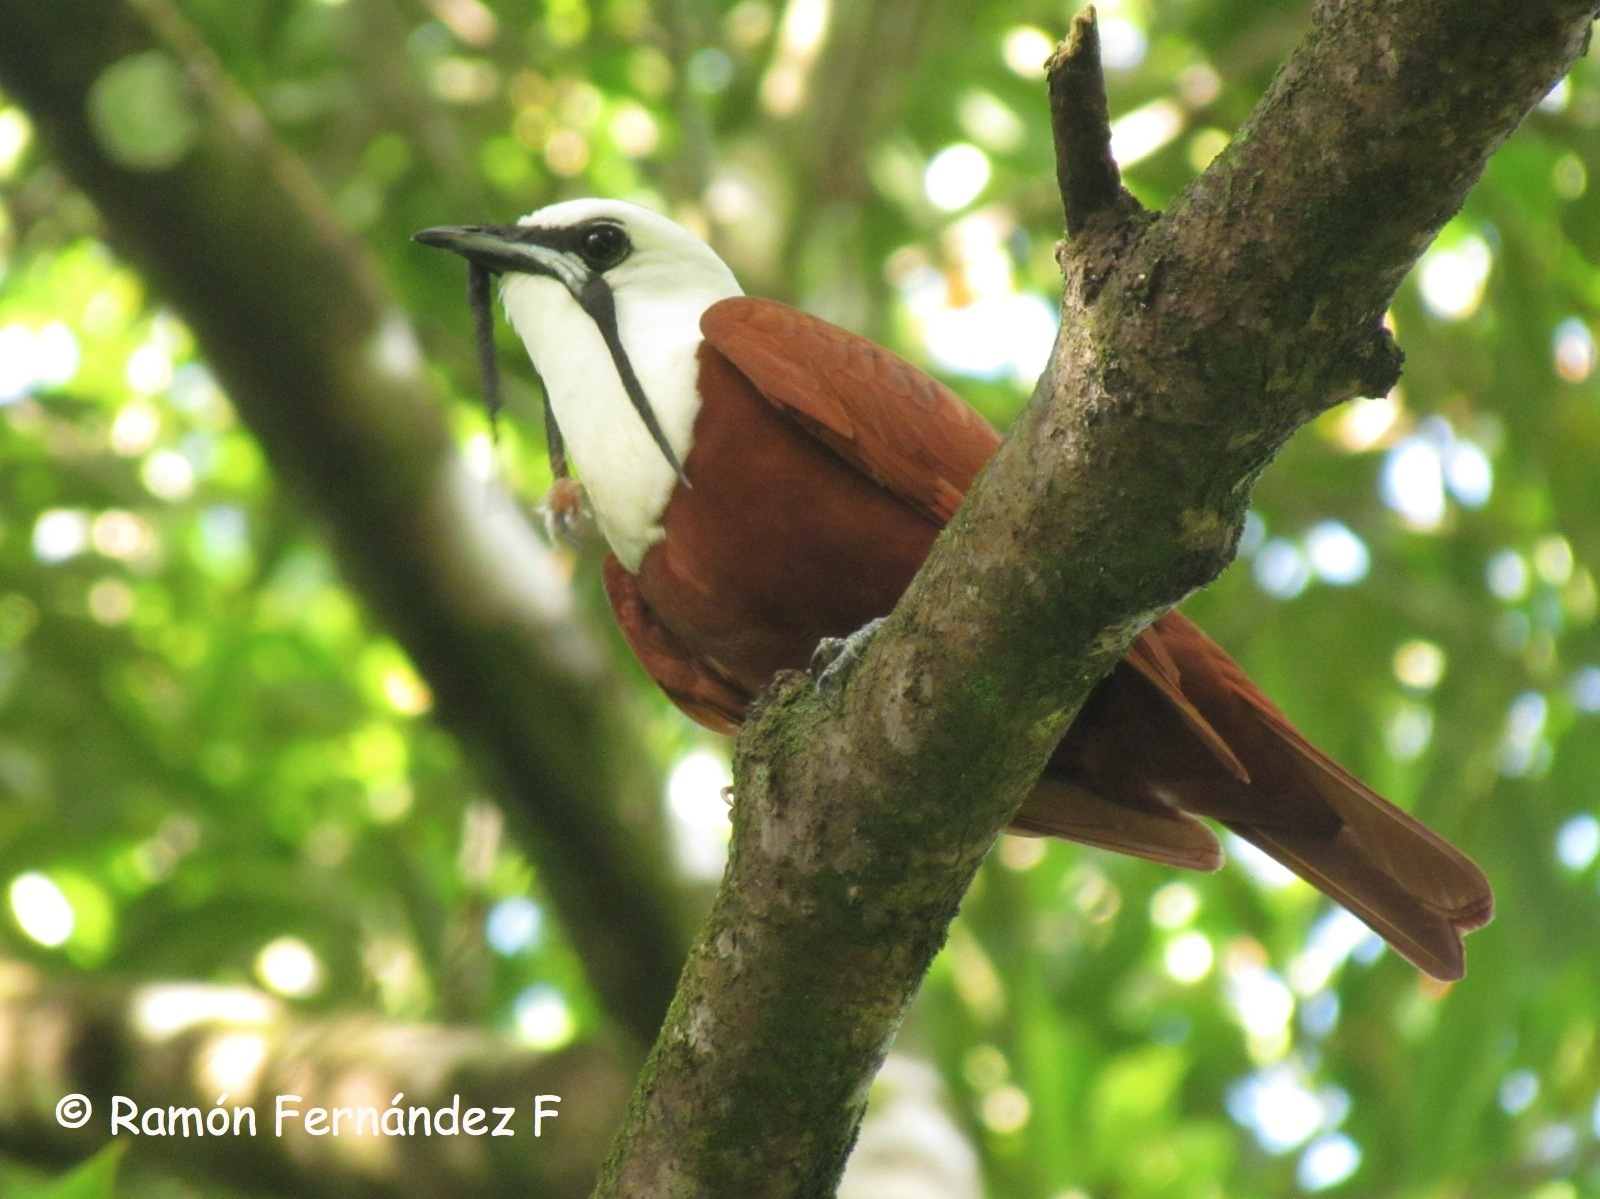 Panama Birdwatching